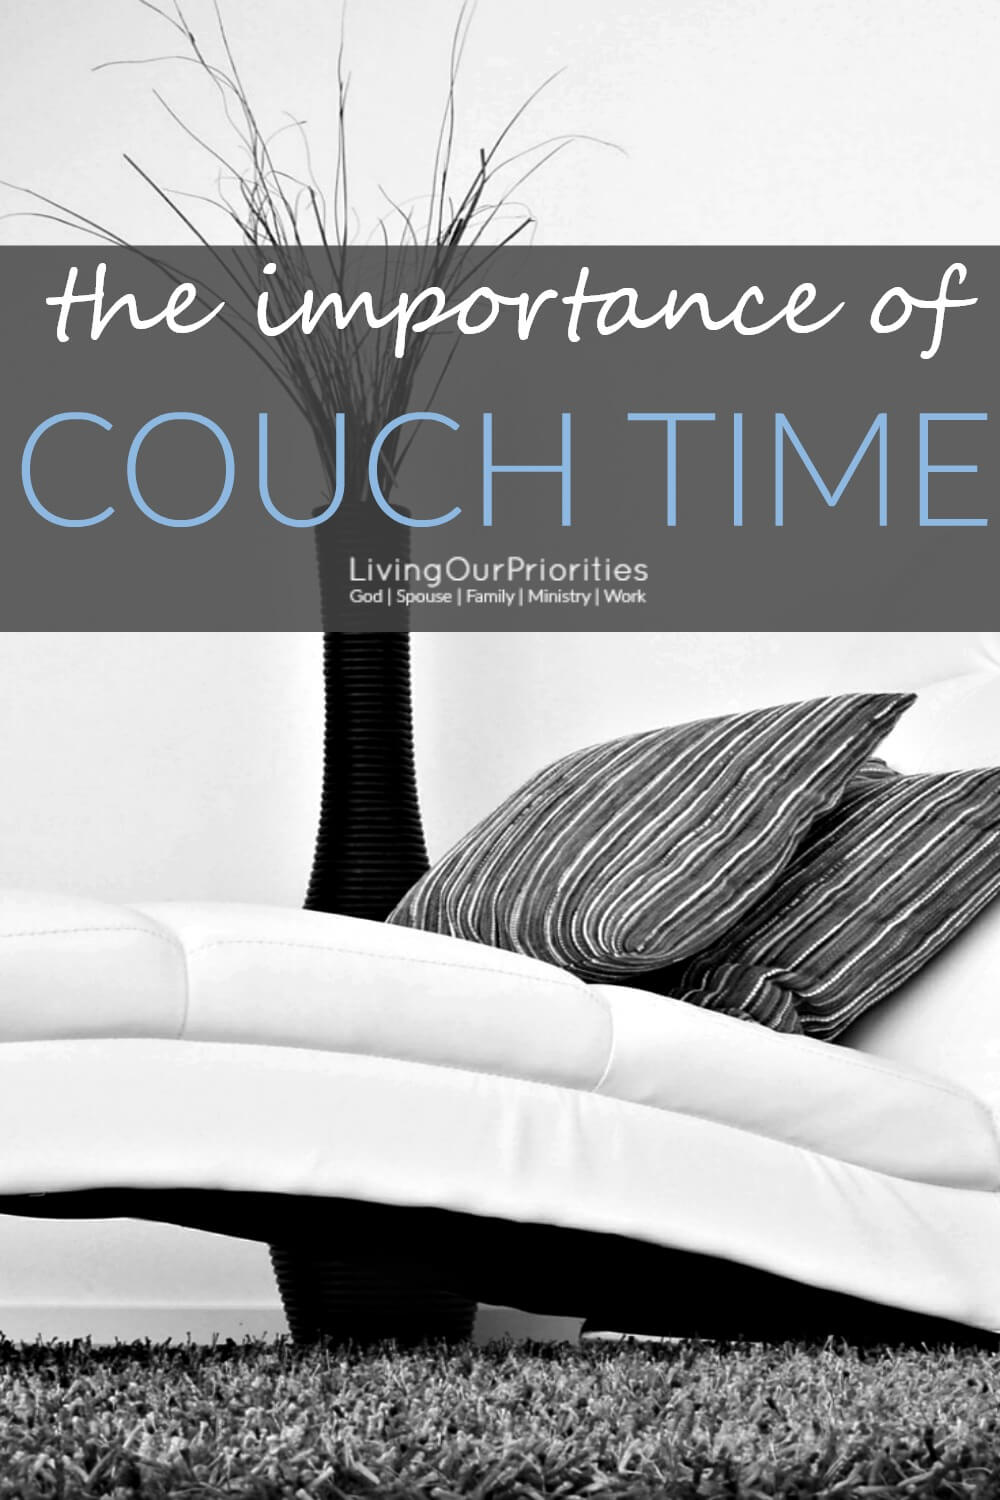 Do you take couch time? Not to long ago we discovered the impact couch time made with our family. Read more to learn why it's important.